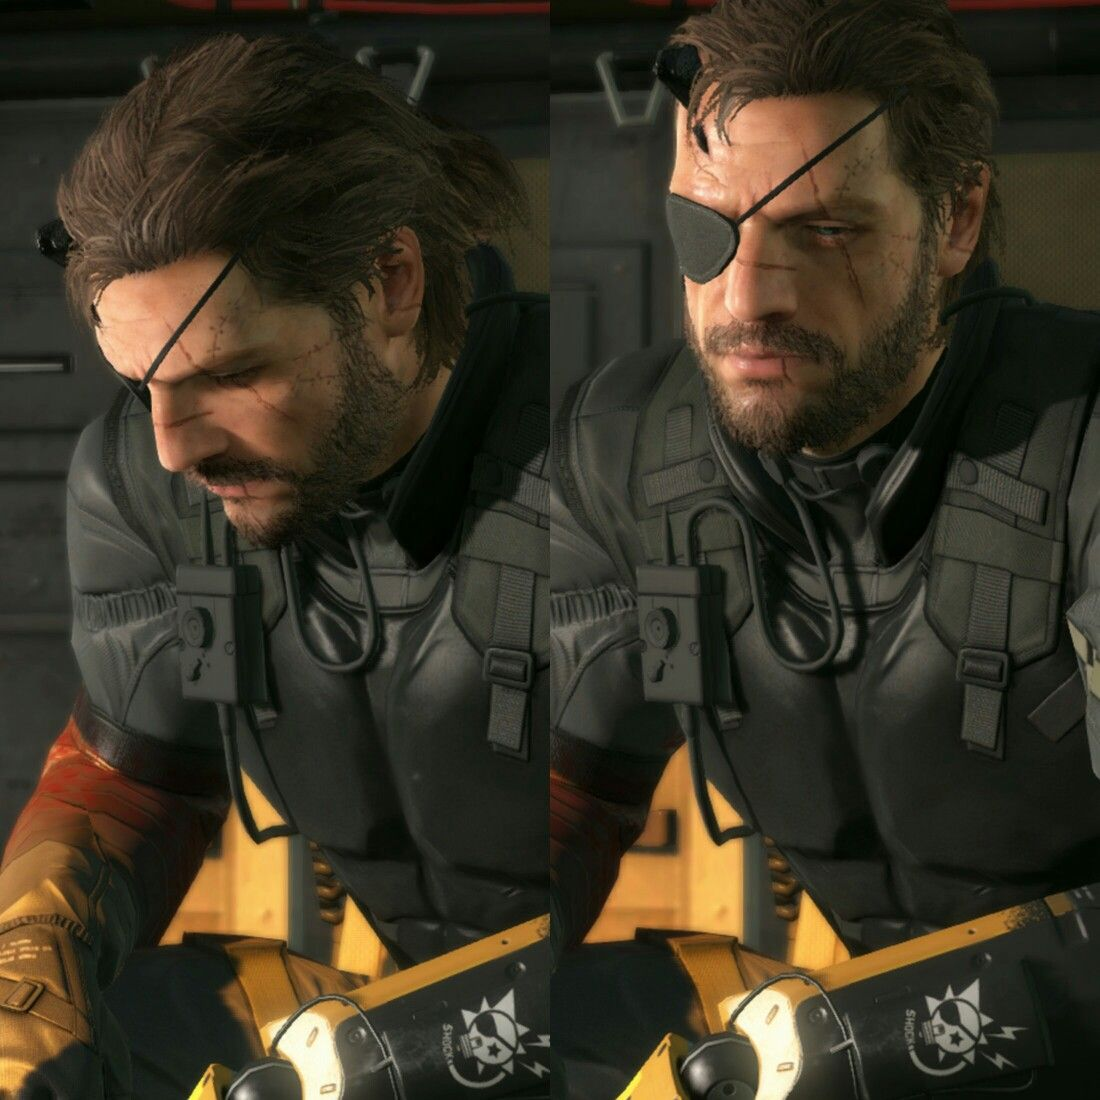 Pin En Metal Gear Solid As punished snake, the implication is that the character's sins have caught up to him. pin en metal gear solid